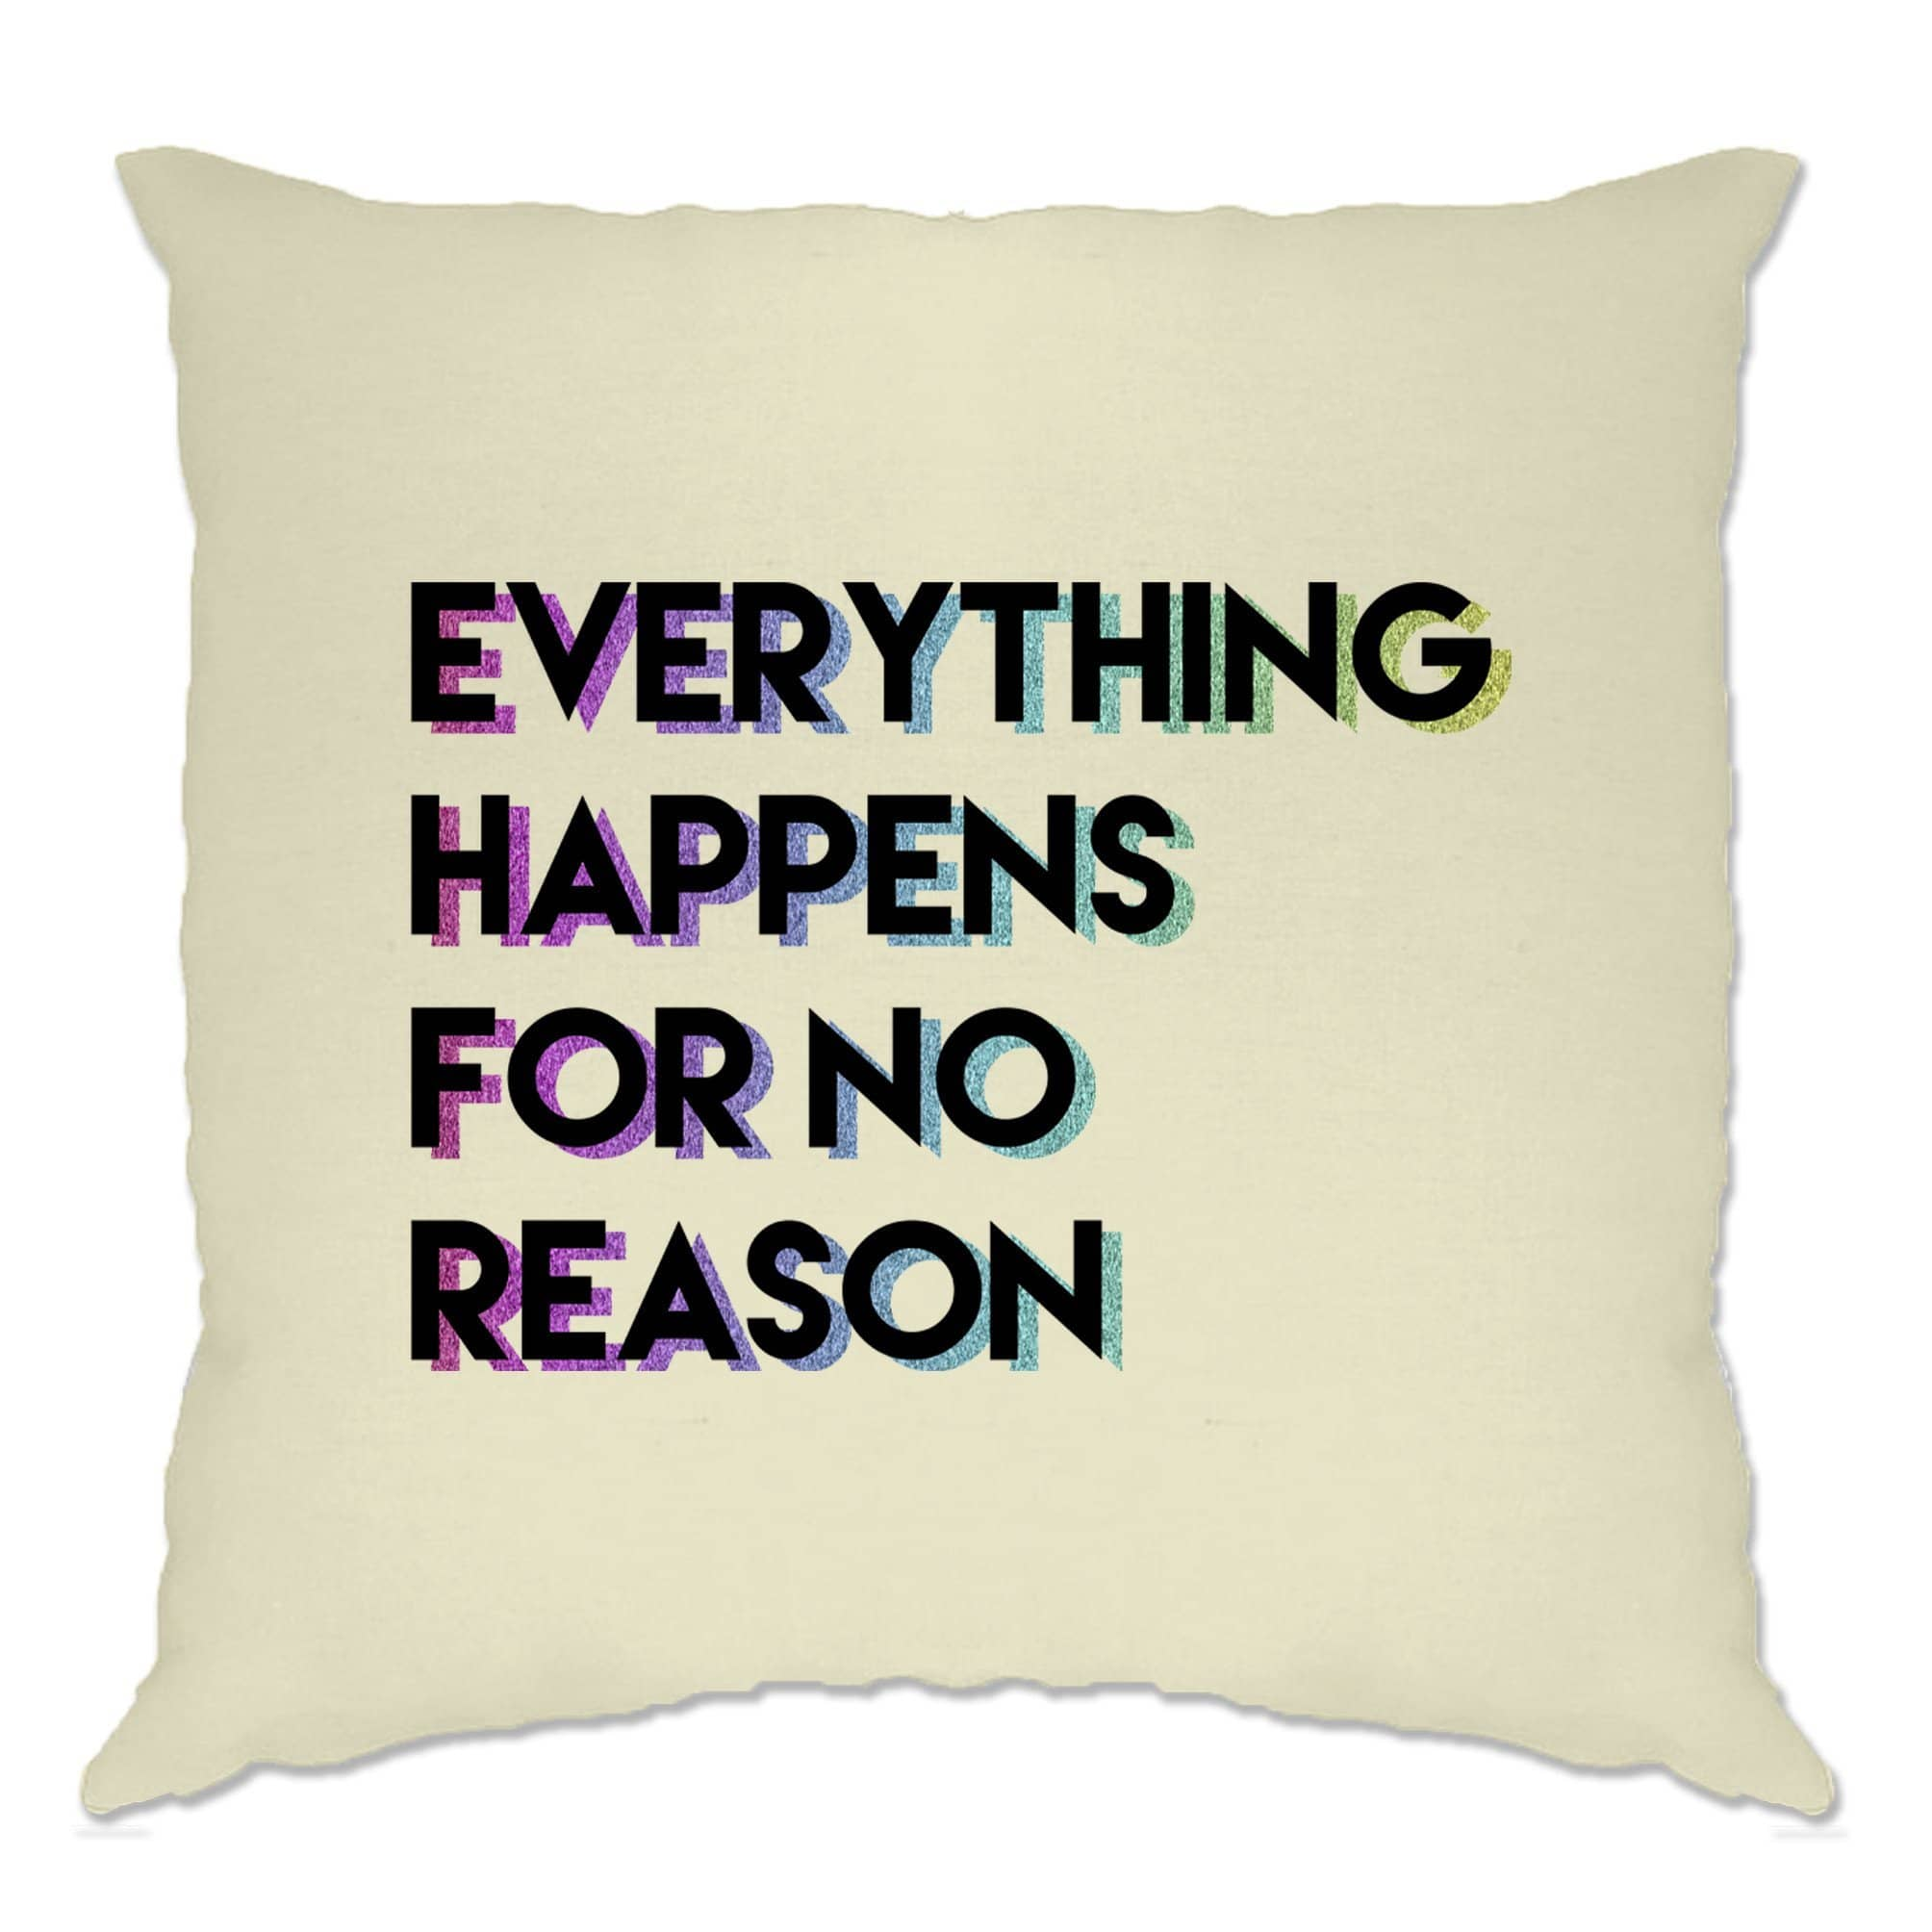 Joke Cushion Cover Everything Happens For No Reason Slogan